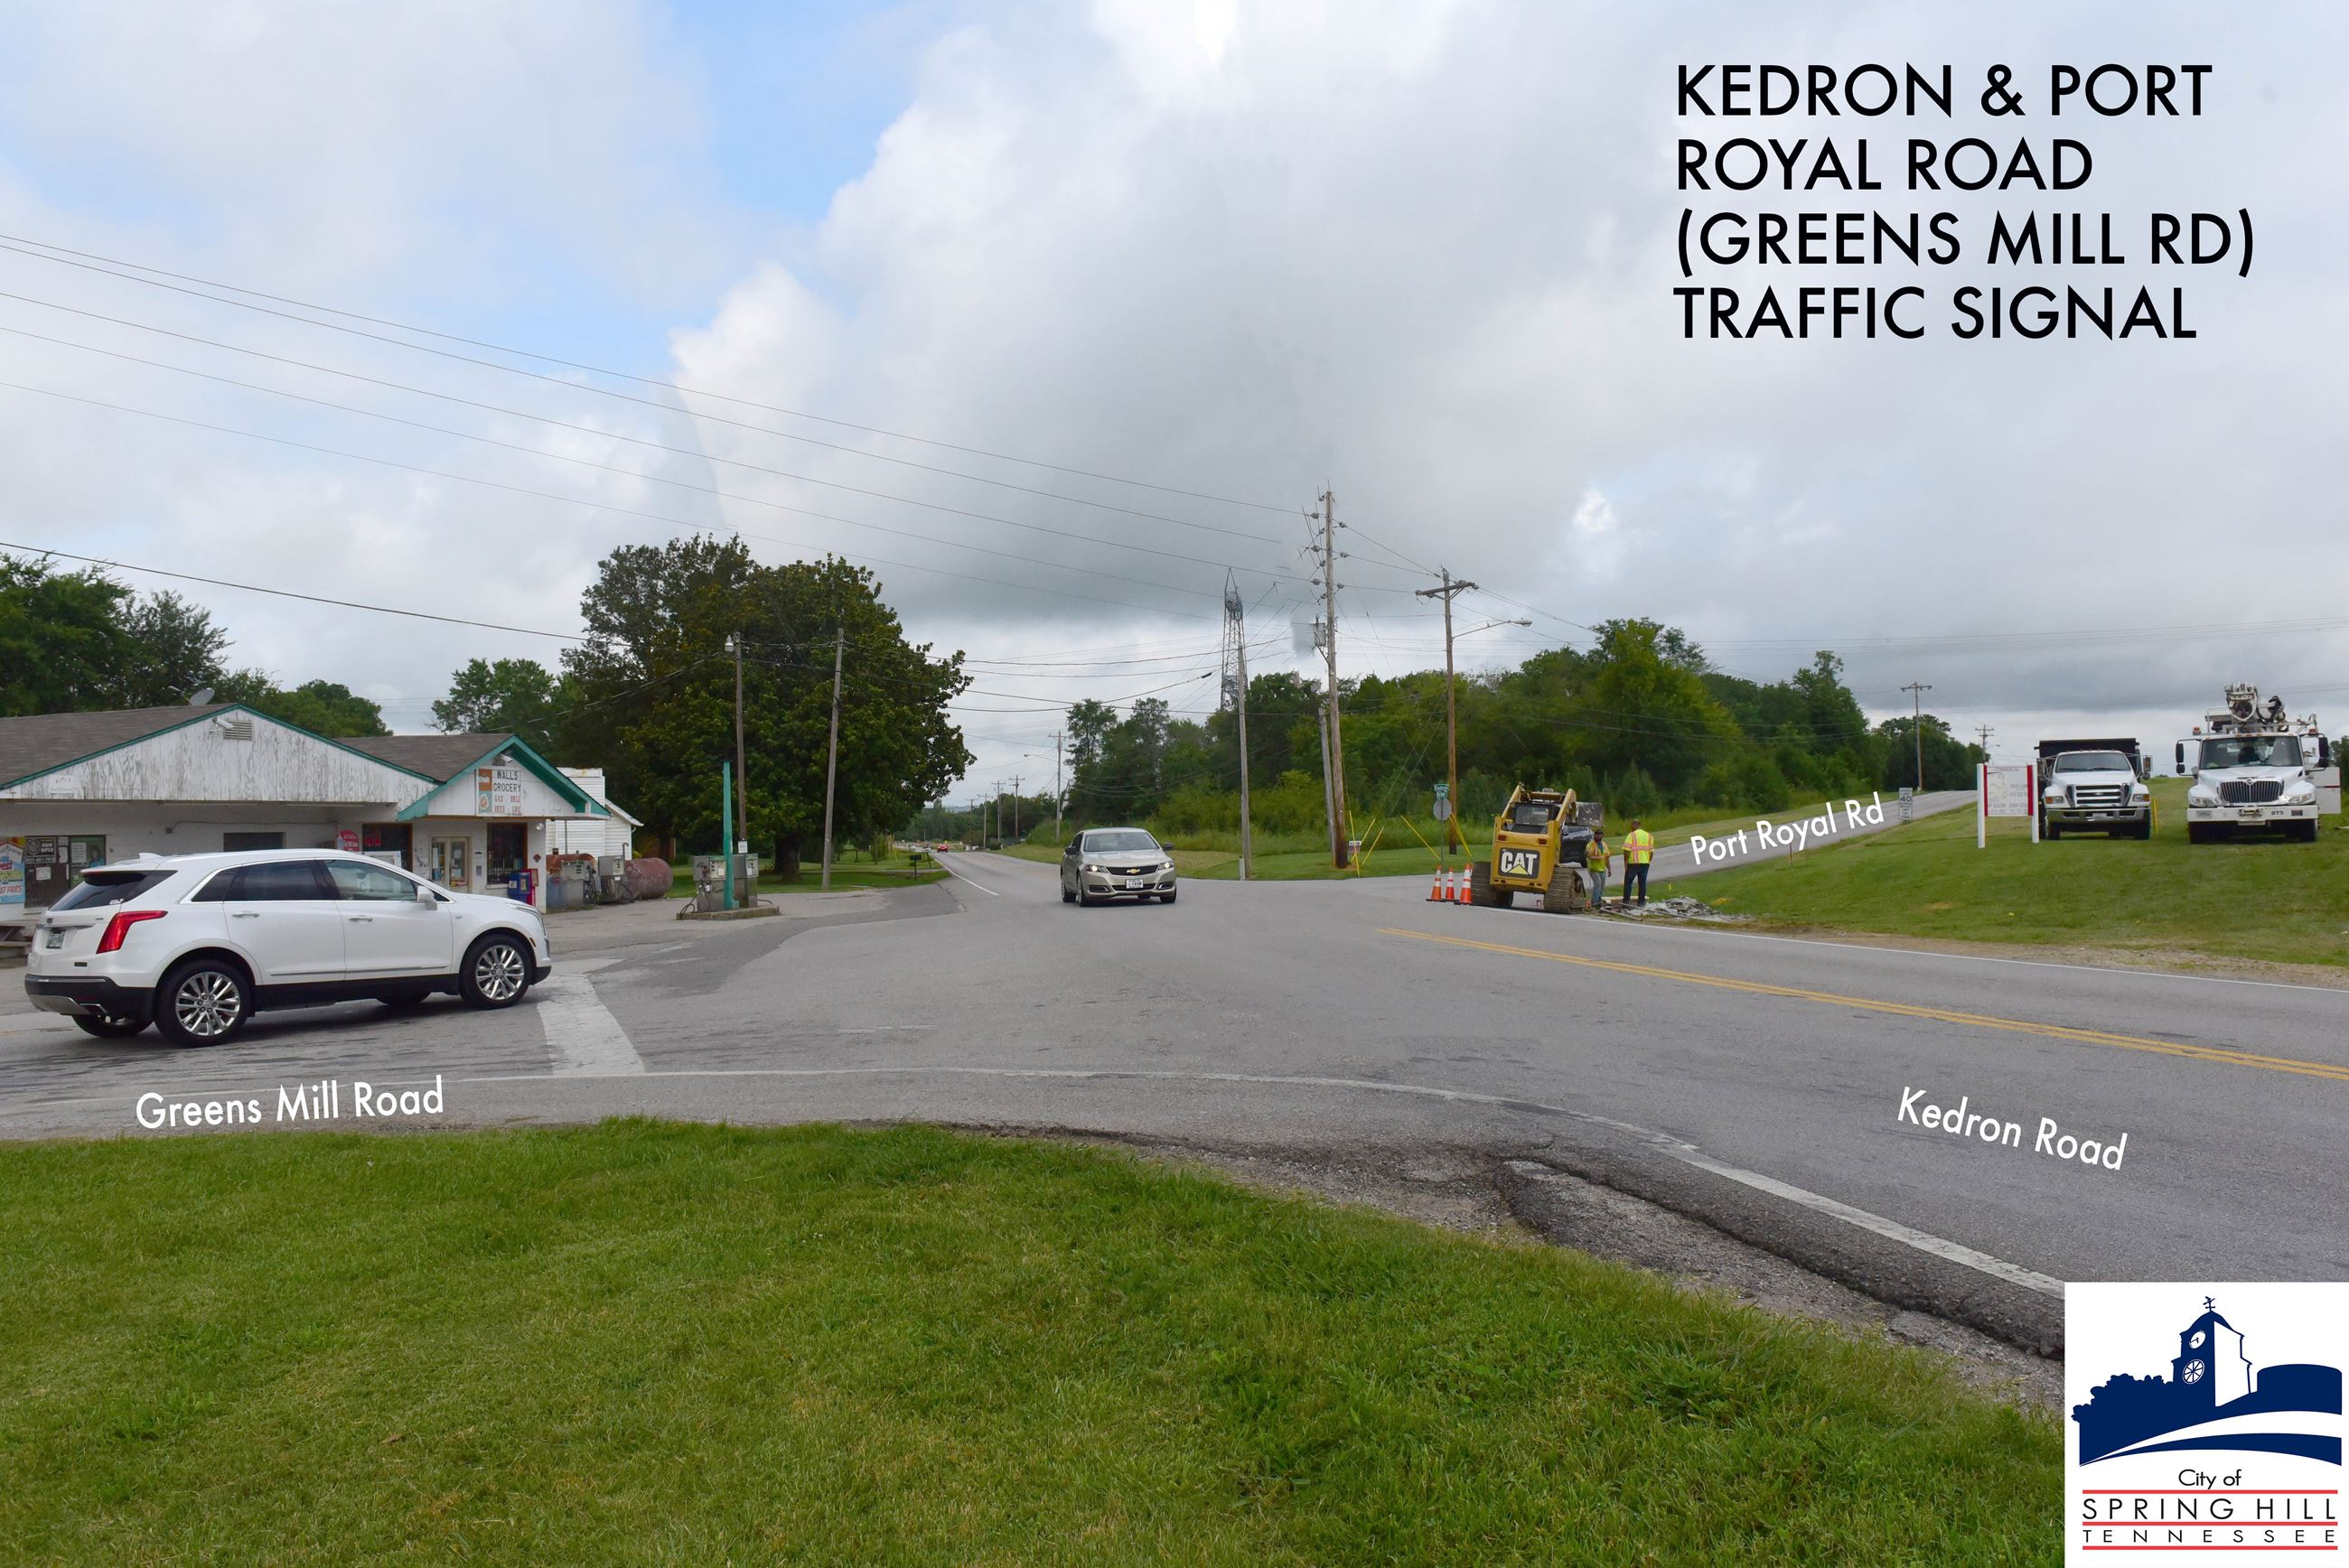 Kedron Road and Port Royal Road traffic signal